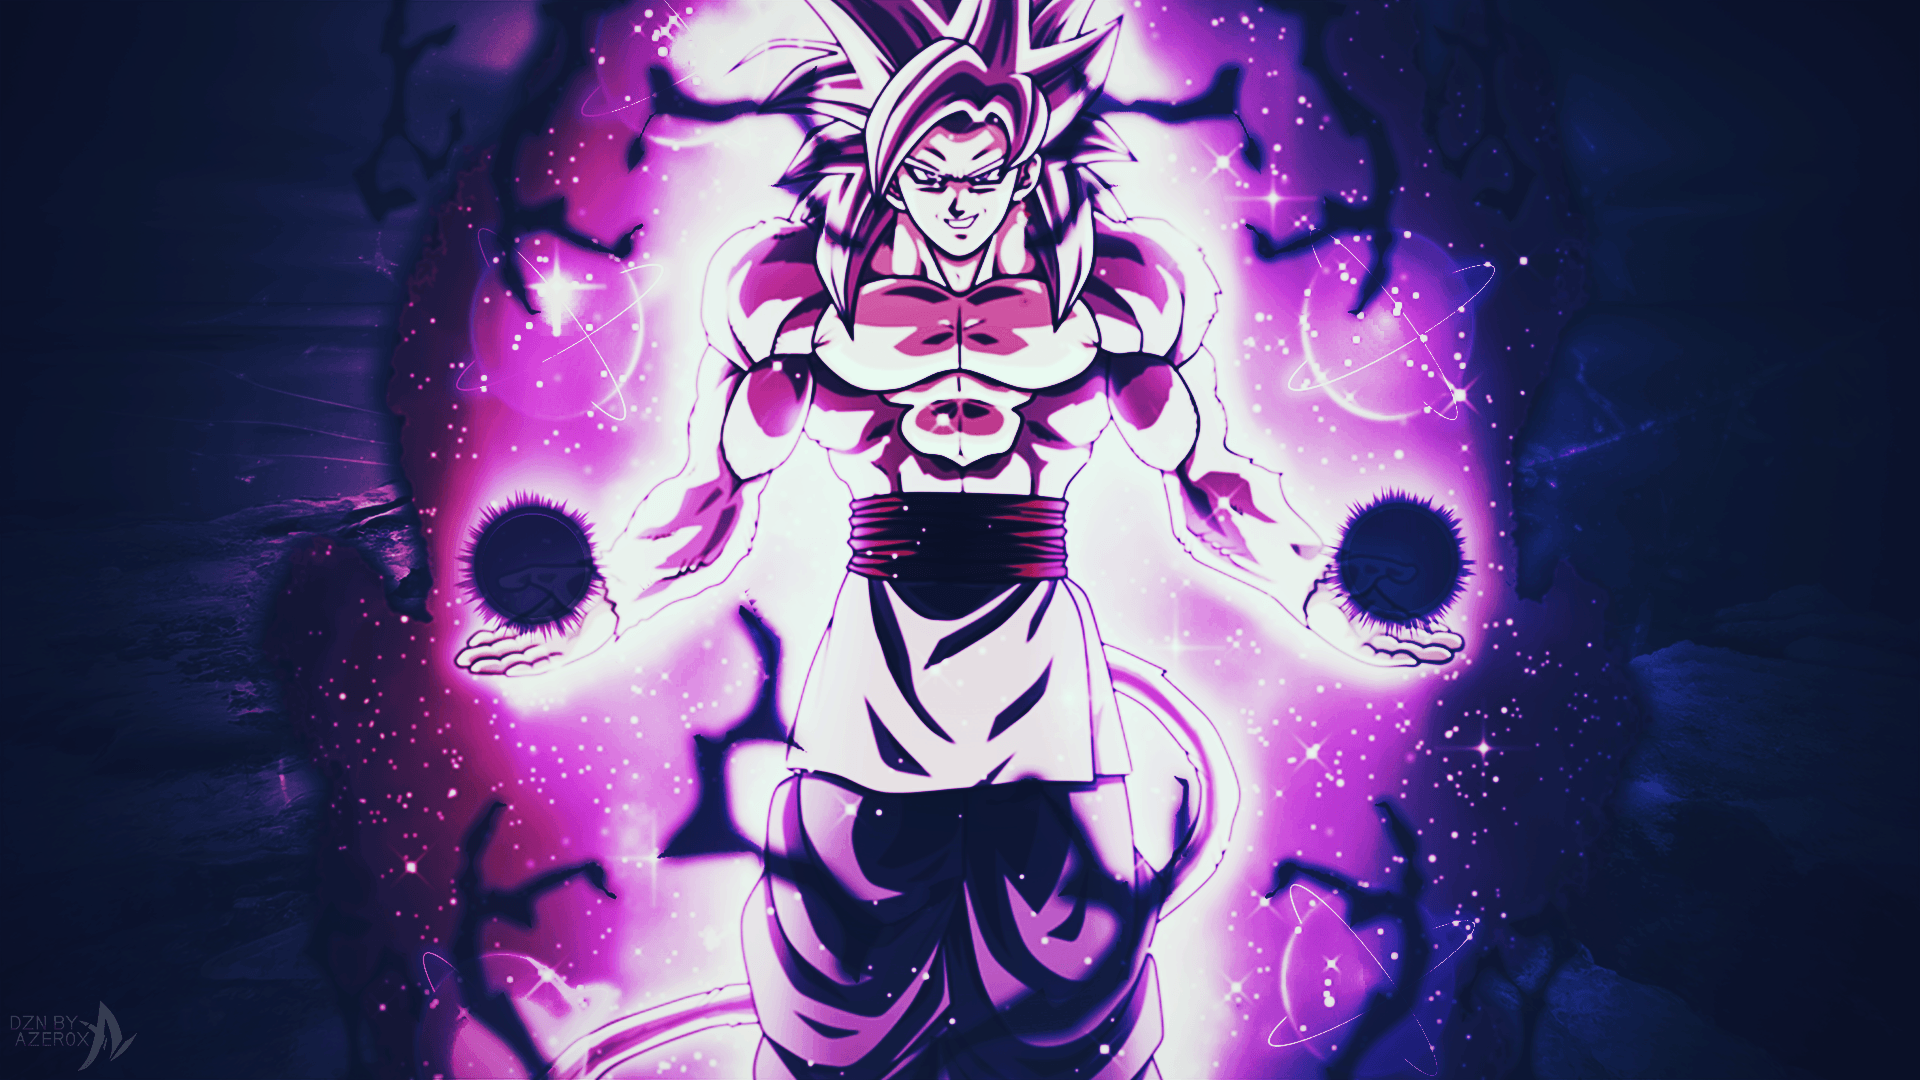 Black Goku Db Super Wallpapers Top Free Black Goku Db